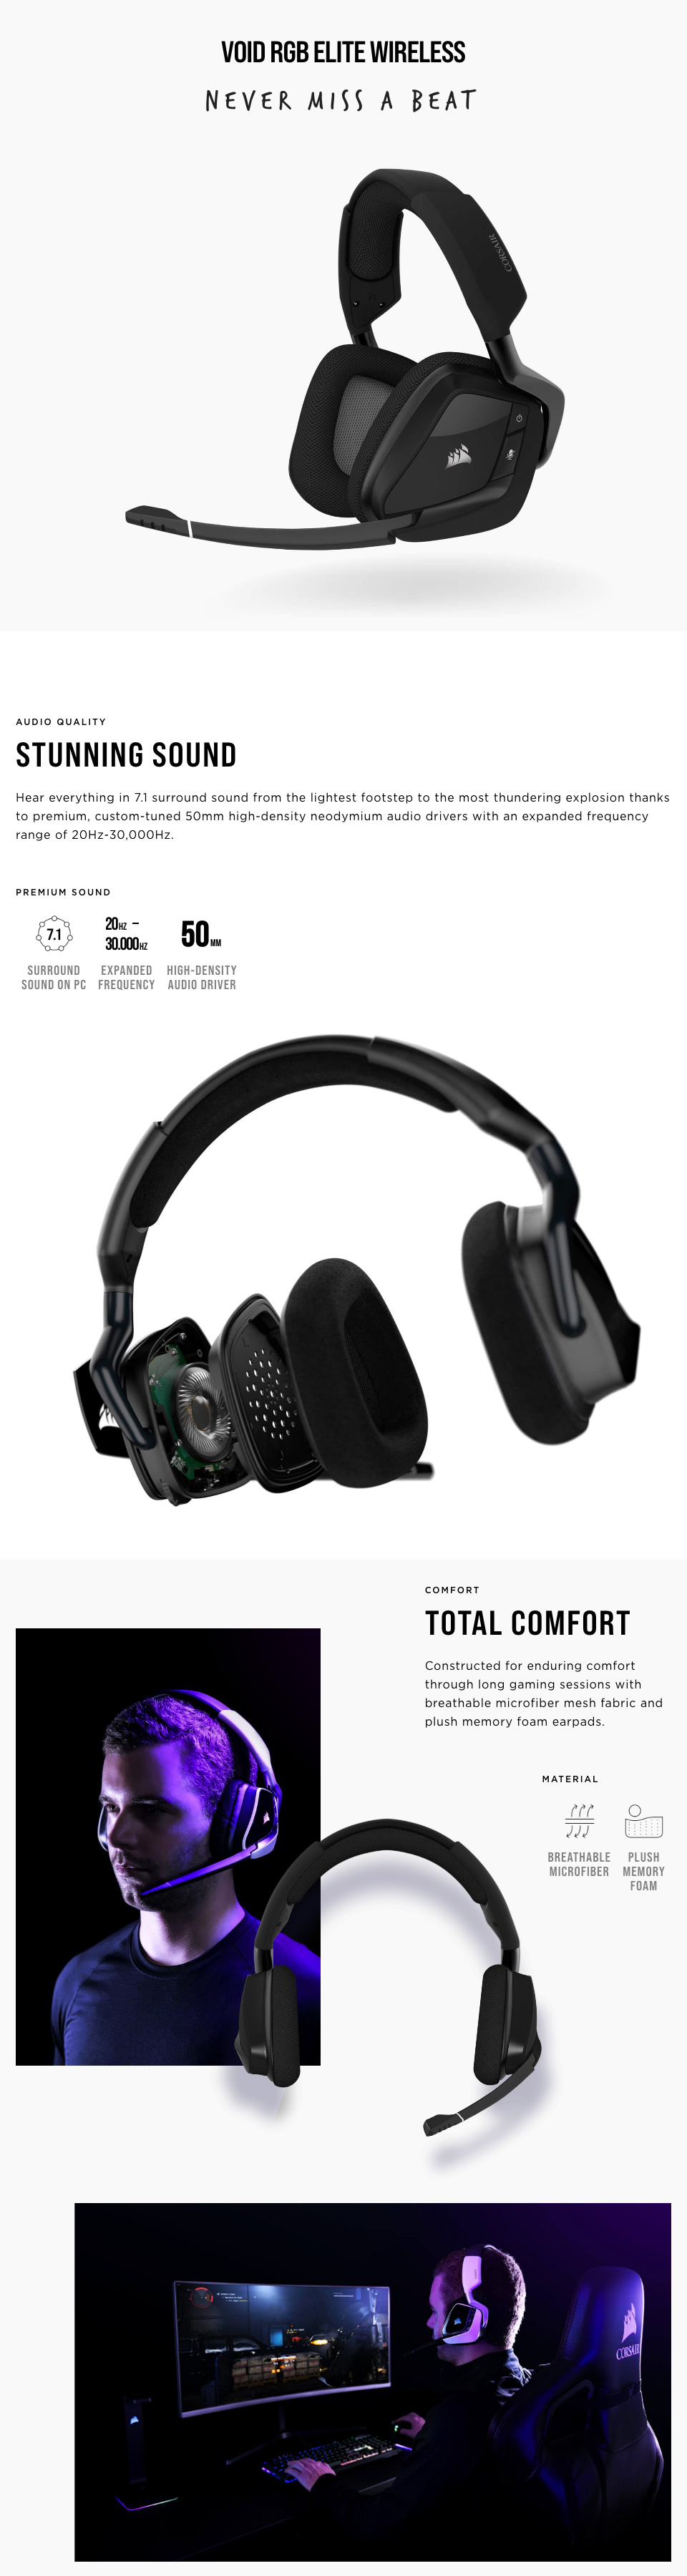 Corsair VOID RGB Elite Wireless Headset with 7.1 Surround Carbon features